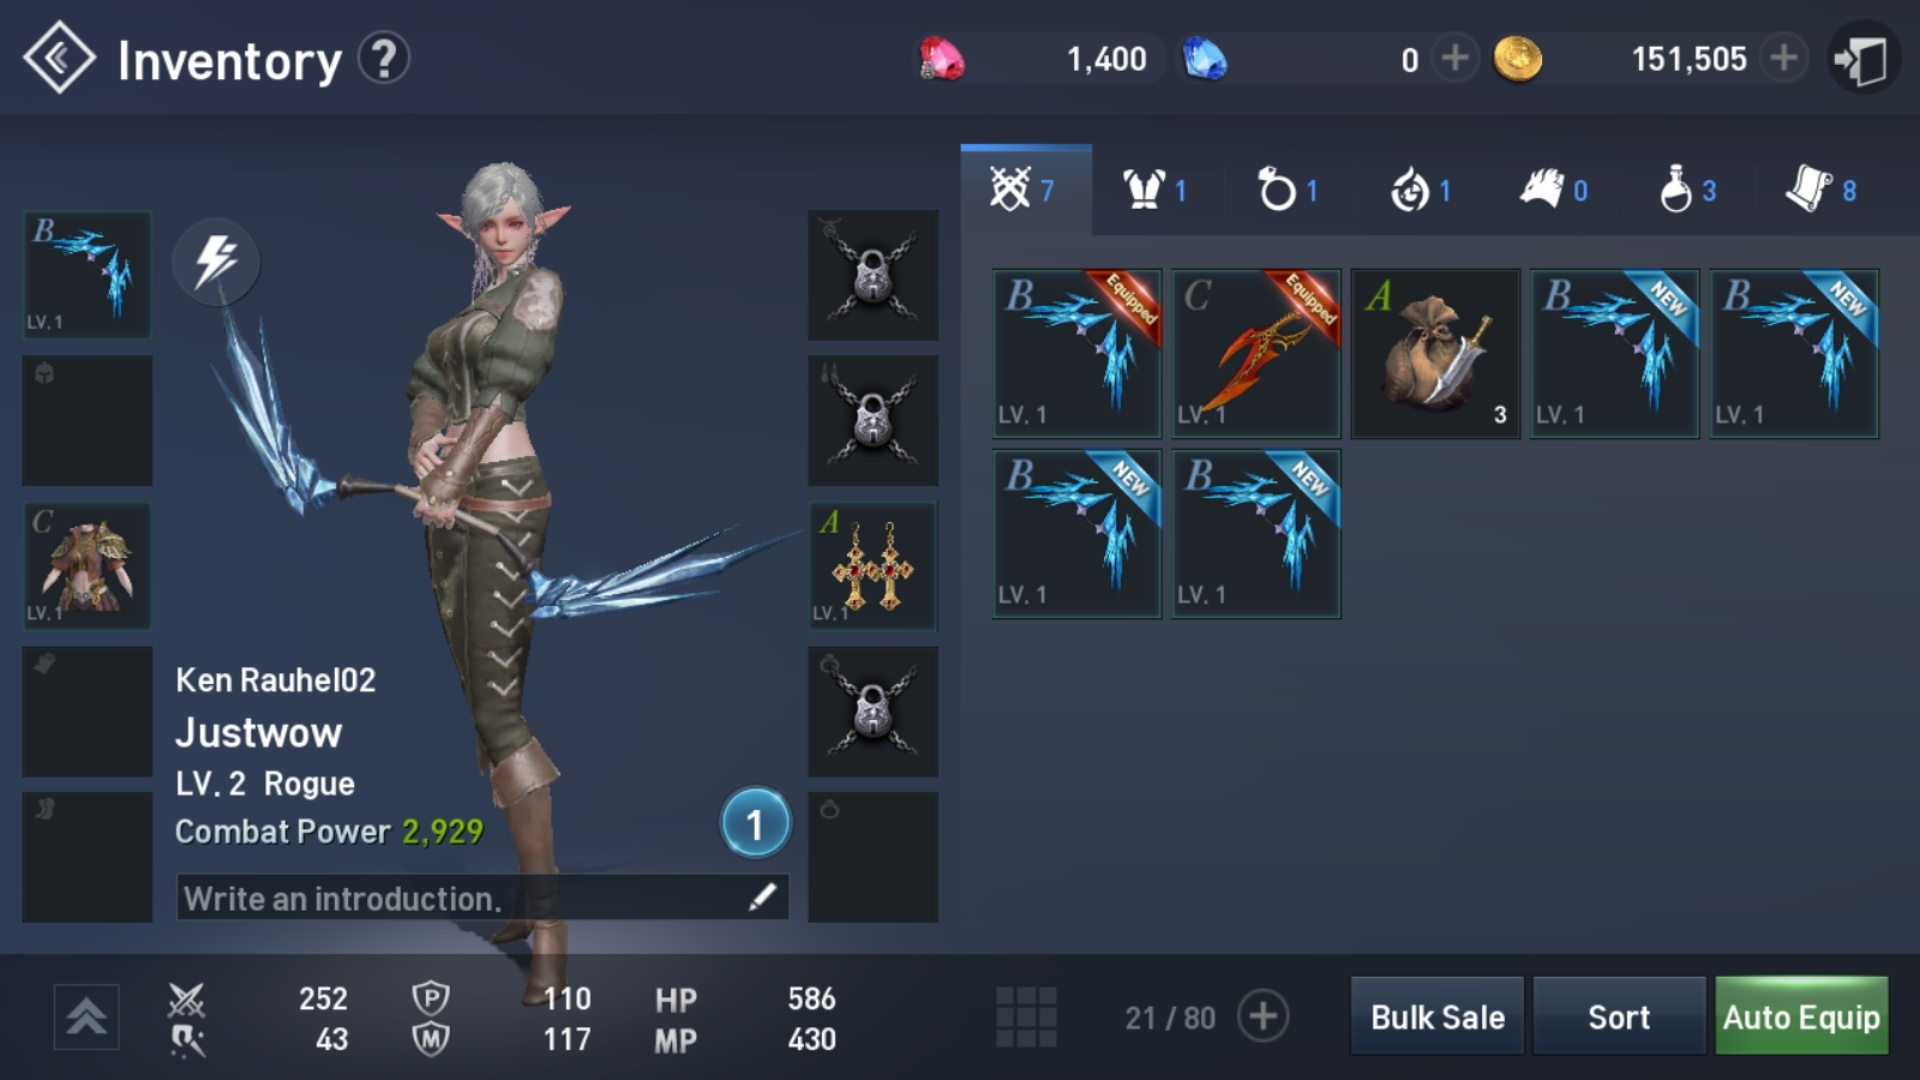 Lineage 2 Revolution Equipment Image 1